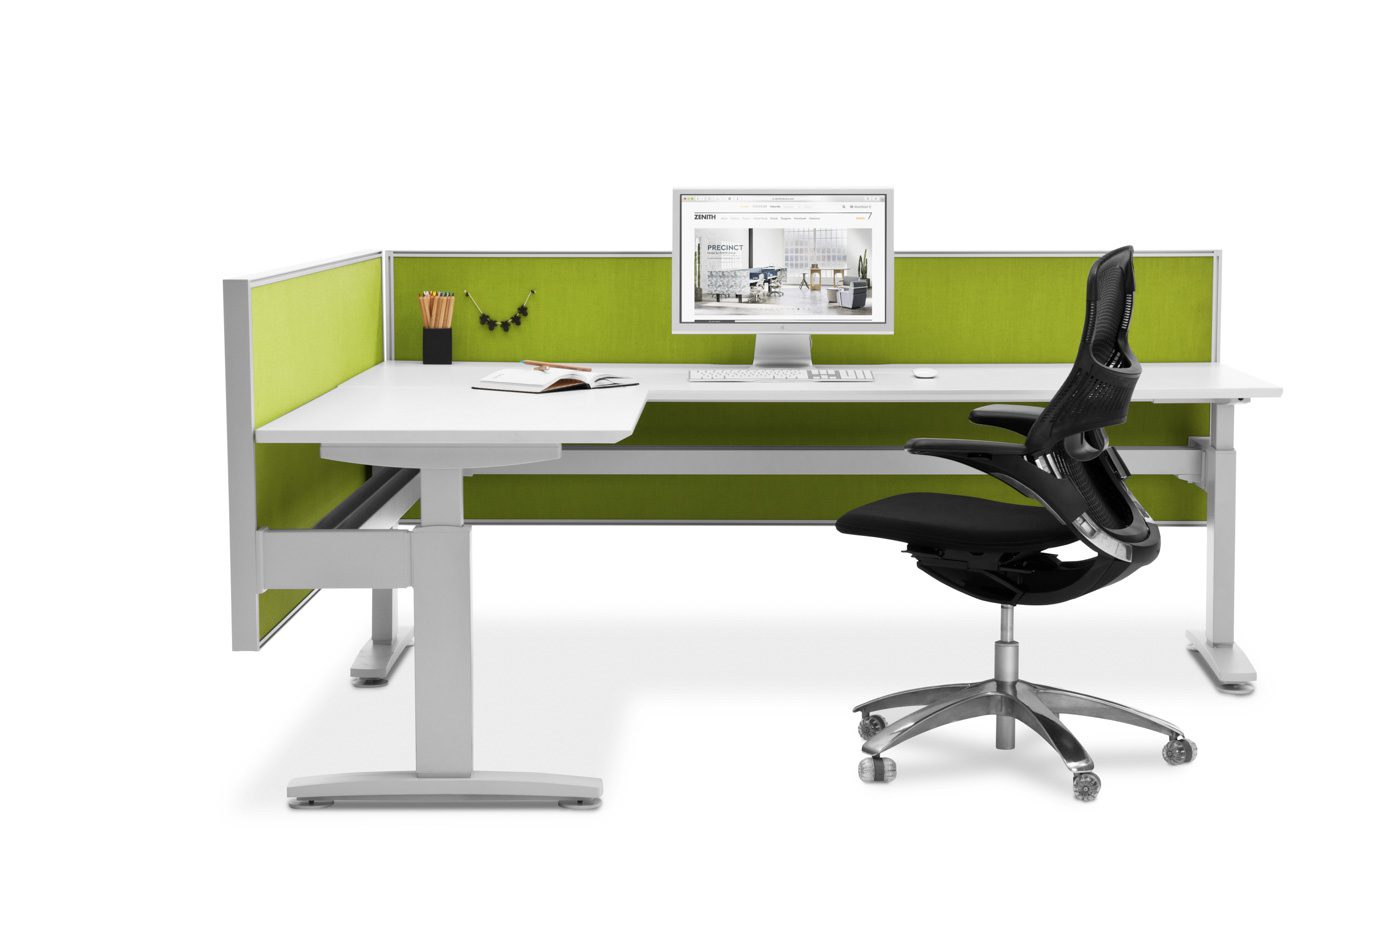 Product photography of desk and chair